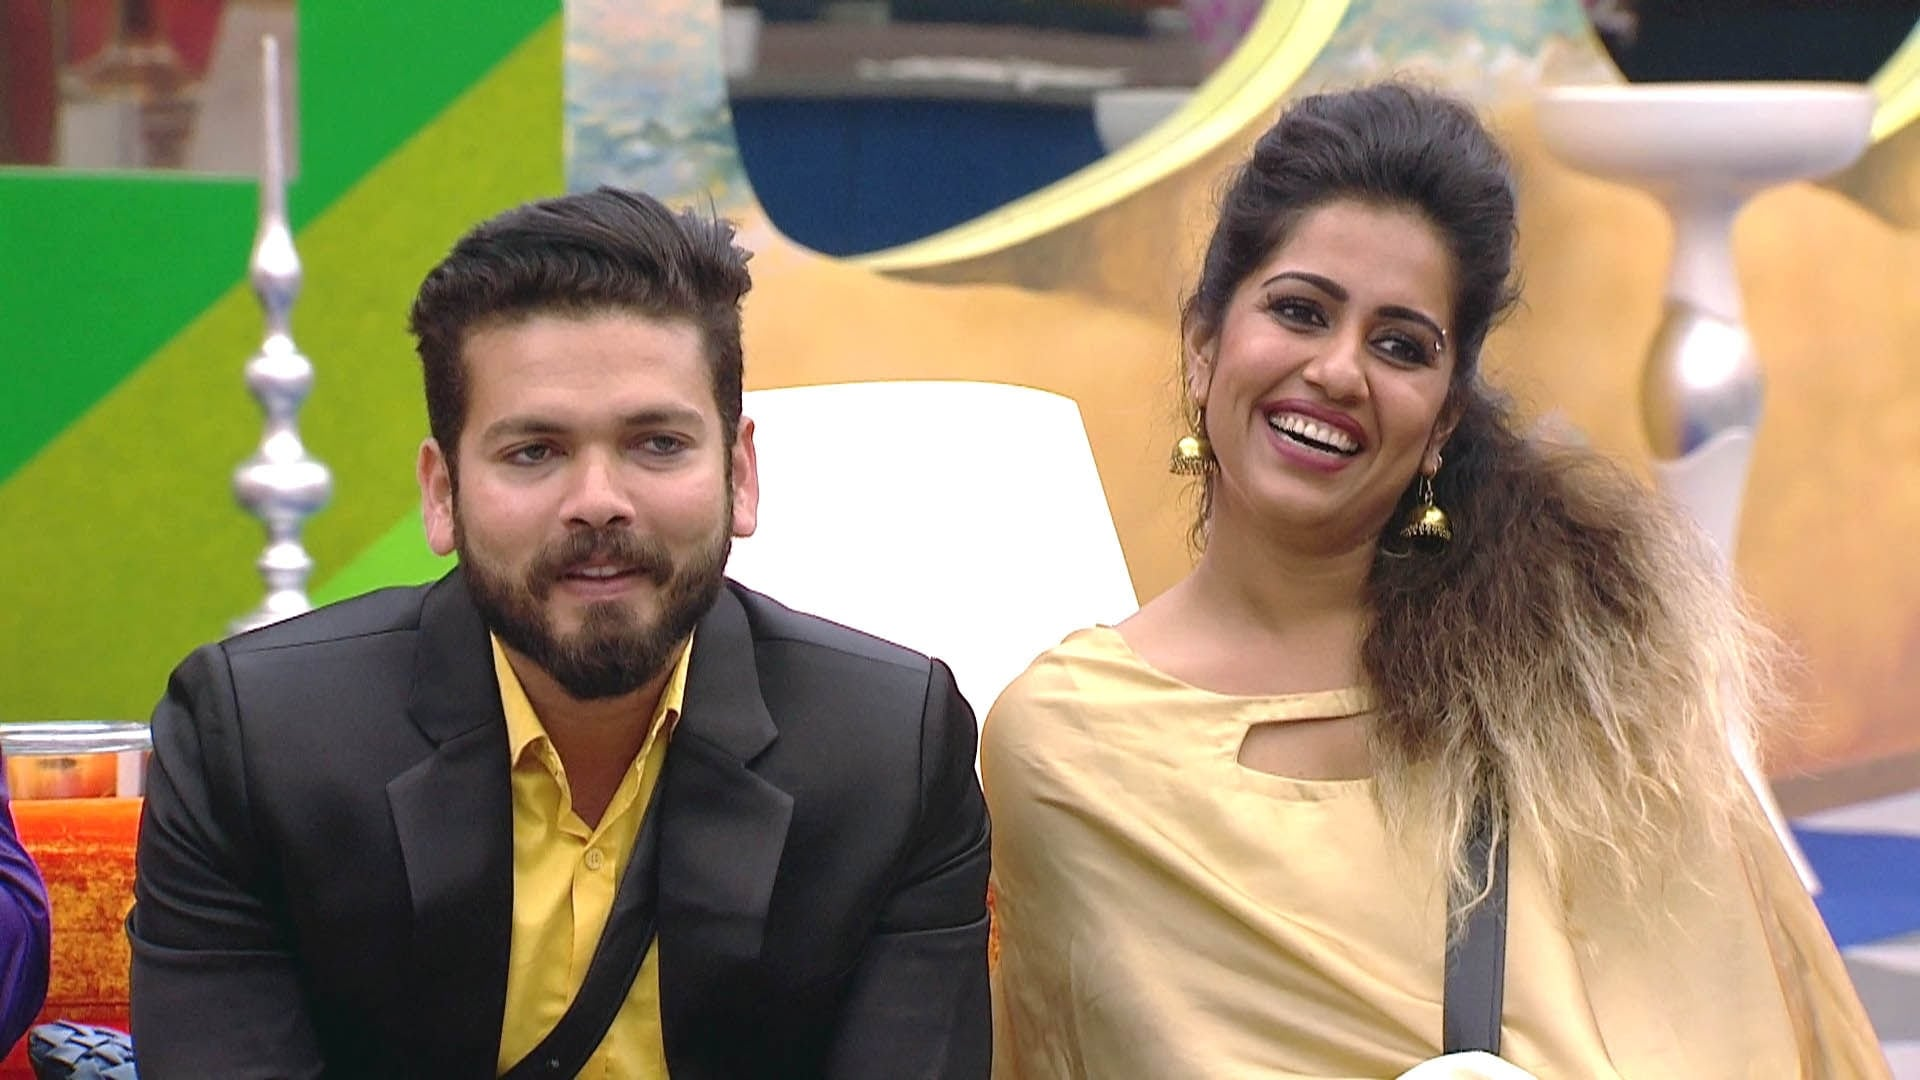 Bigg Boss - Season 1 Episode 64 : Day 63: Love Is In the Air